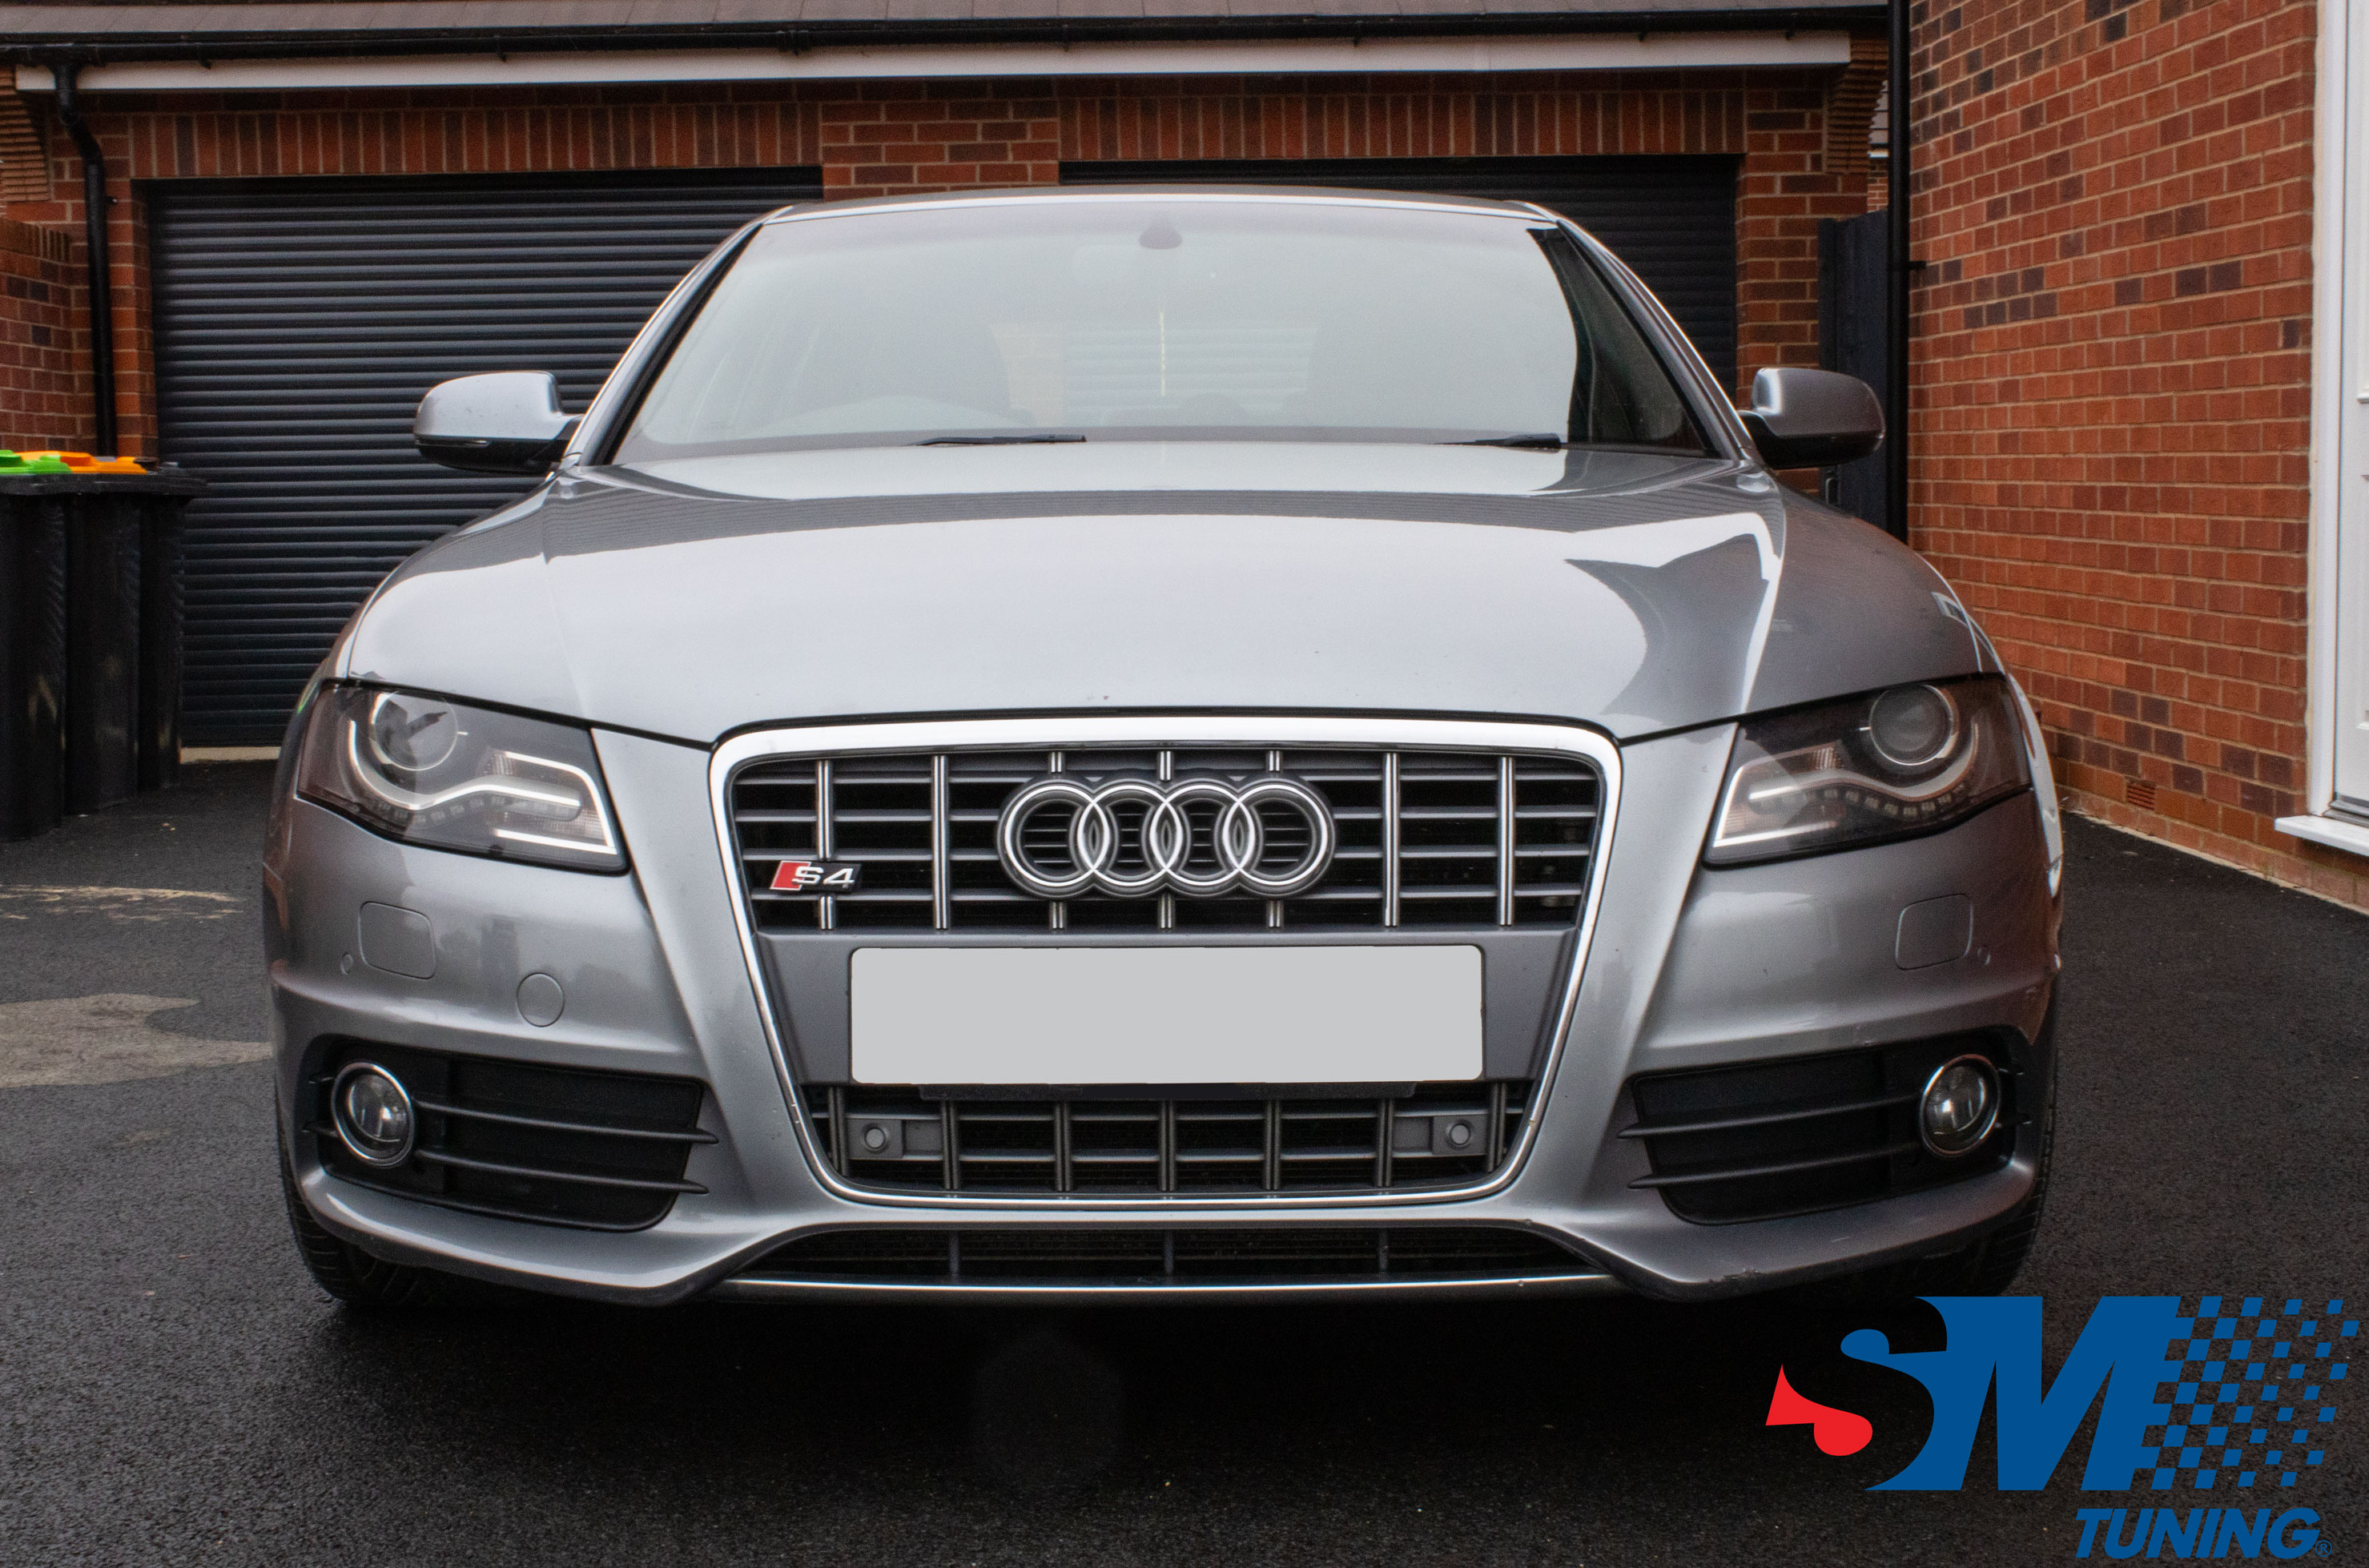 Audi S4 3.0 TFSi (Supercharged) Tuned in Bedfordshire